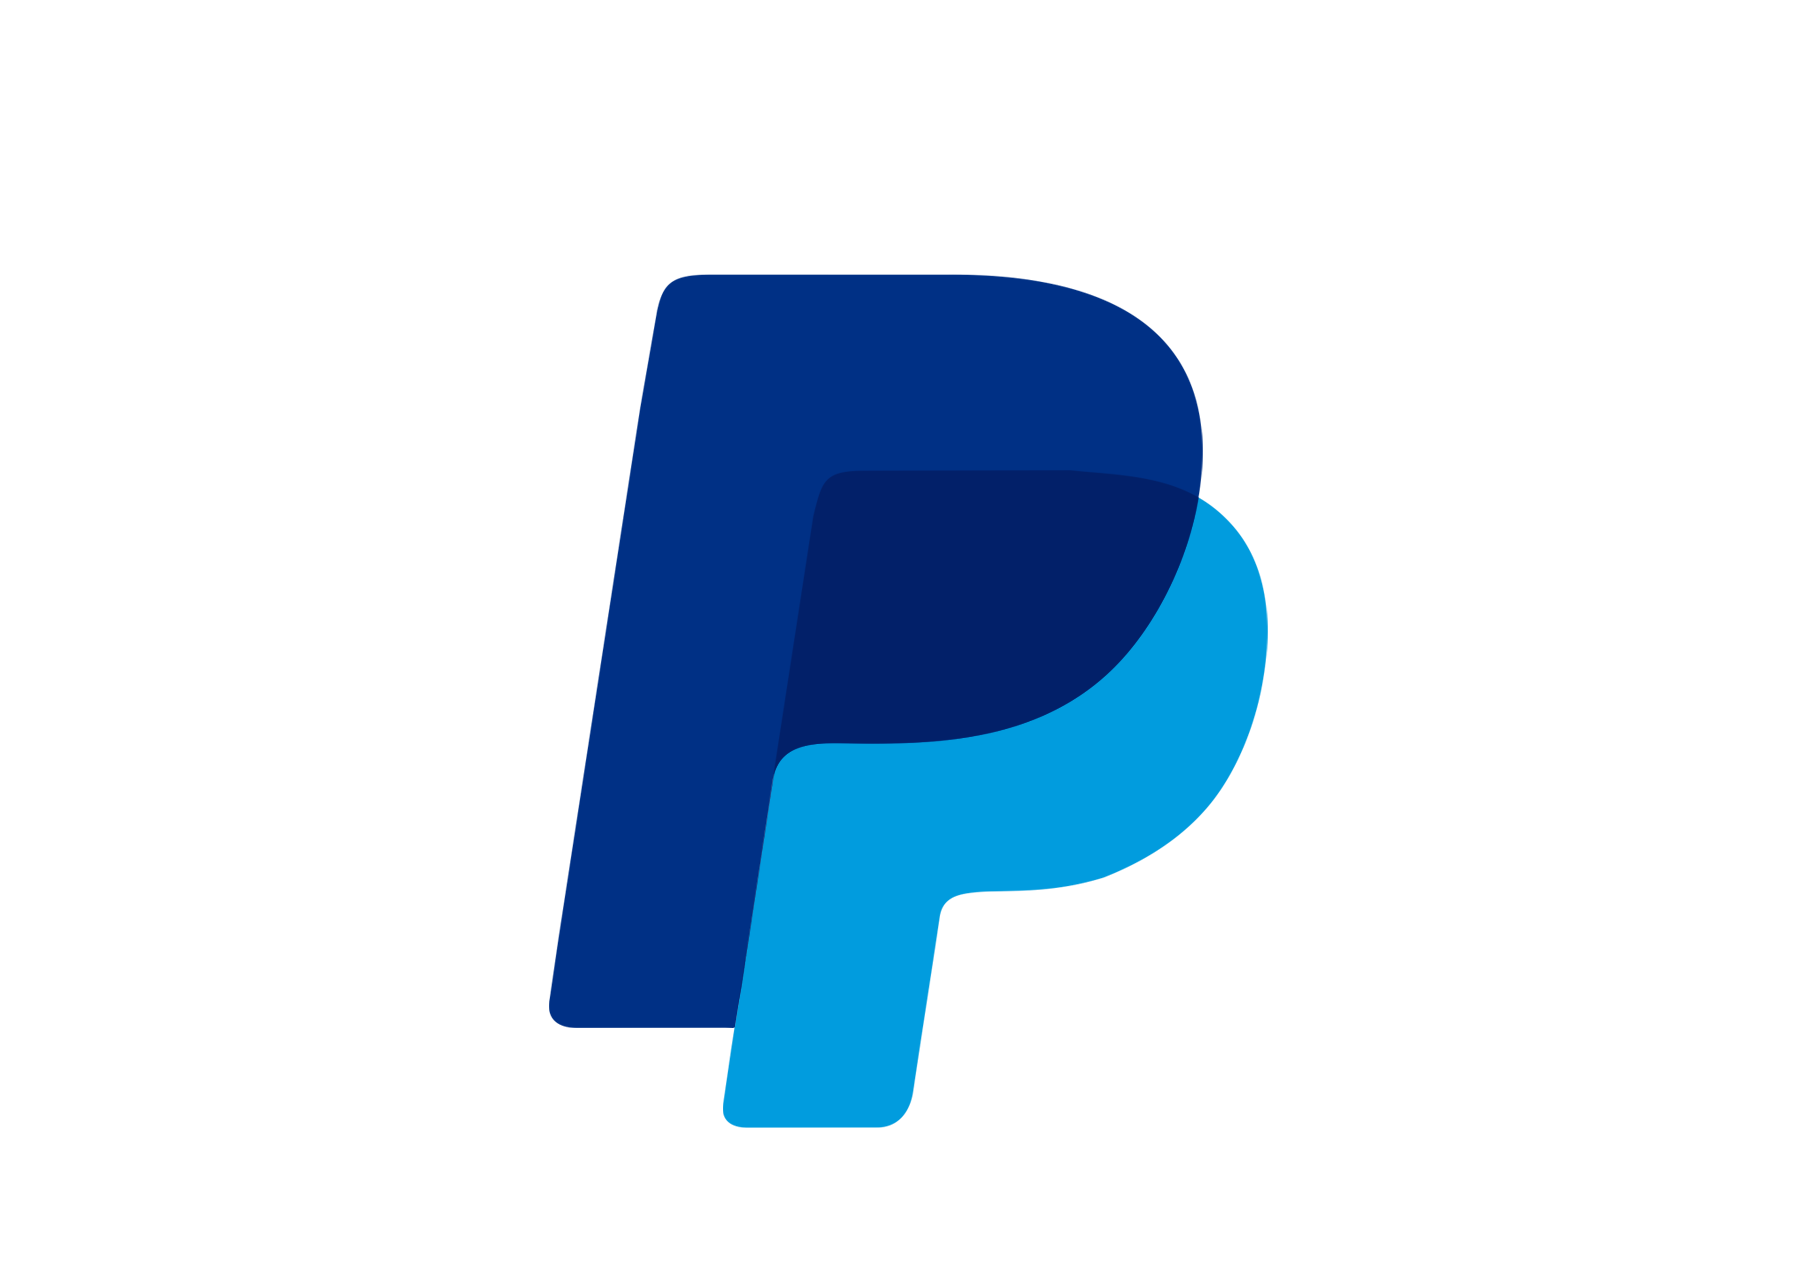 Transparent images all logo. Paypal png freeuse